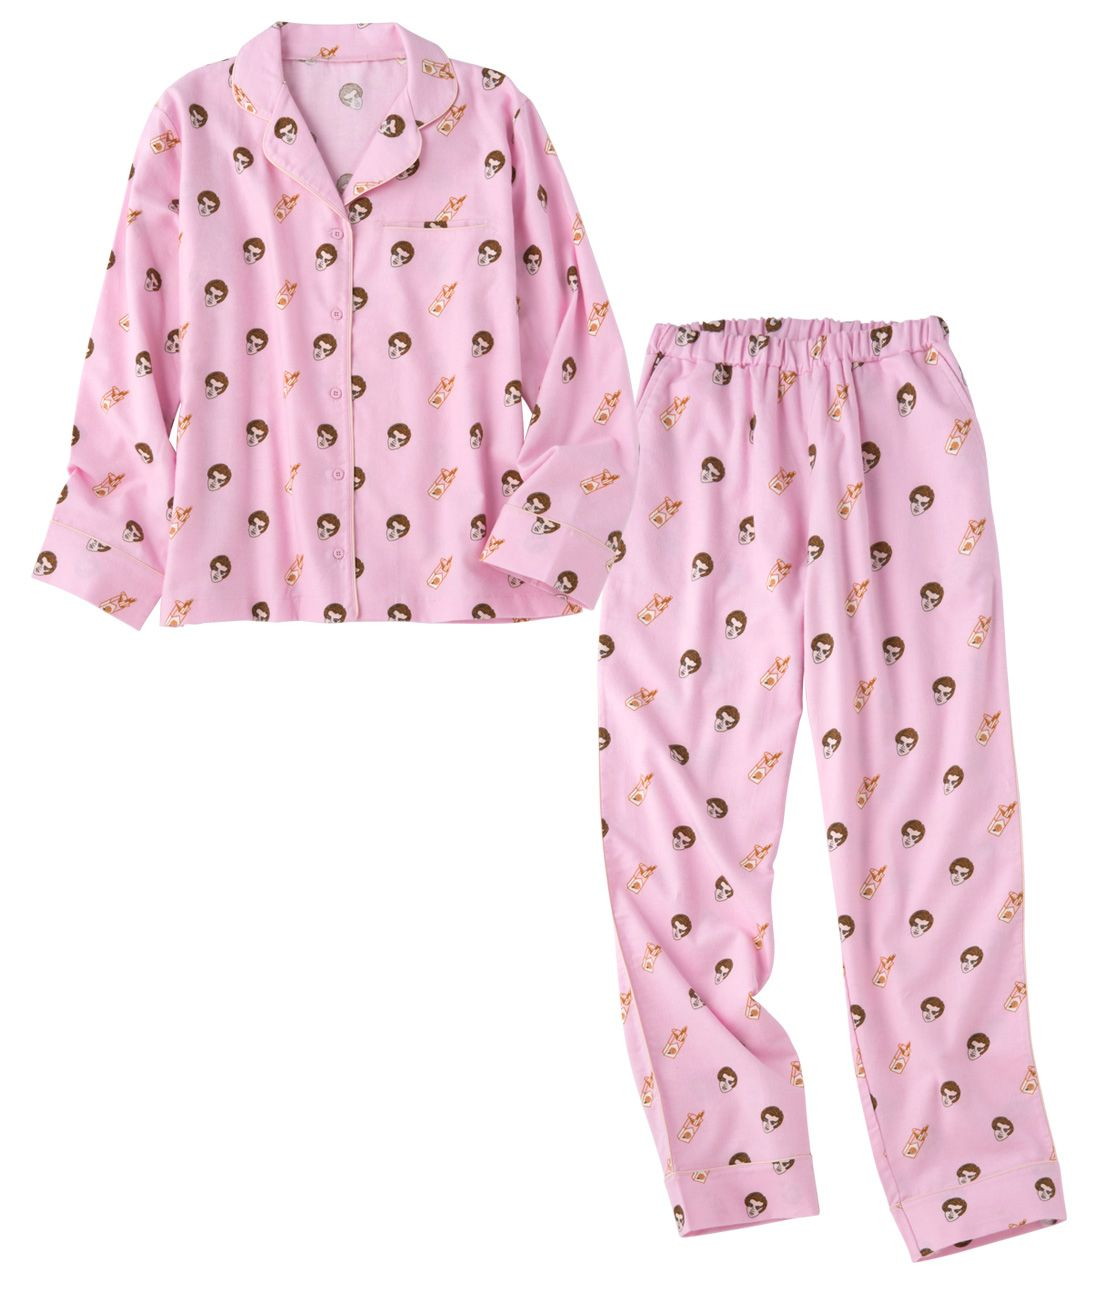 YM flannel pajamas